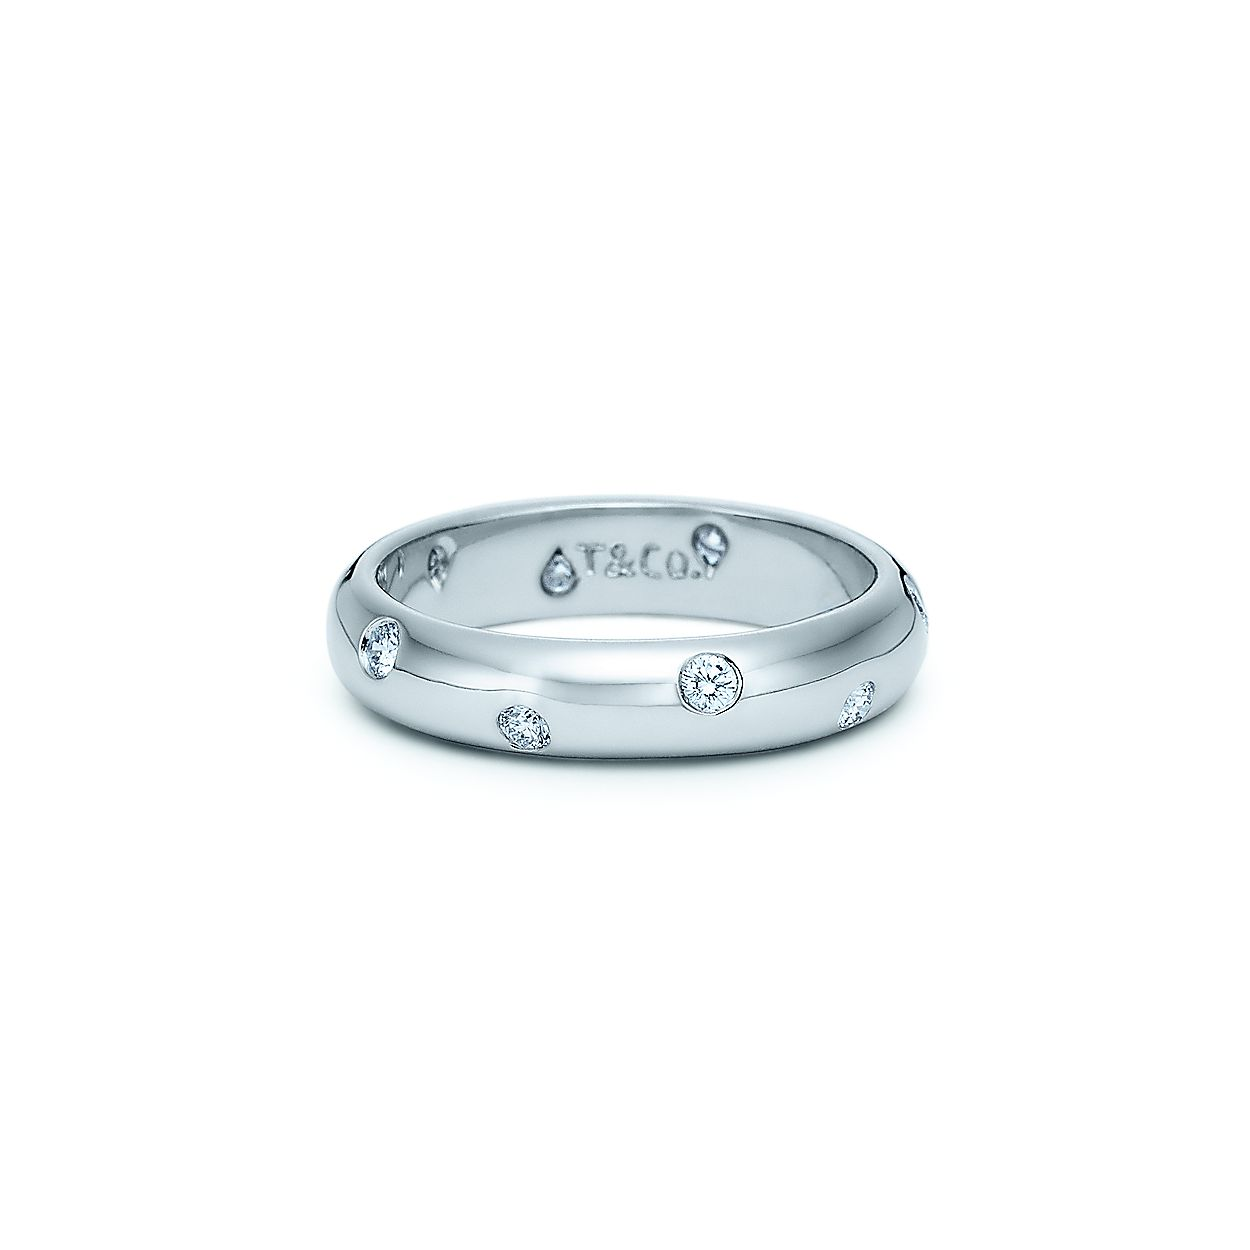 f120a4c8a57a Etoile band ring with diamonds in platinum.